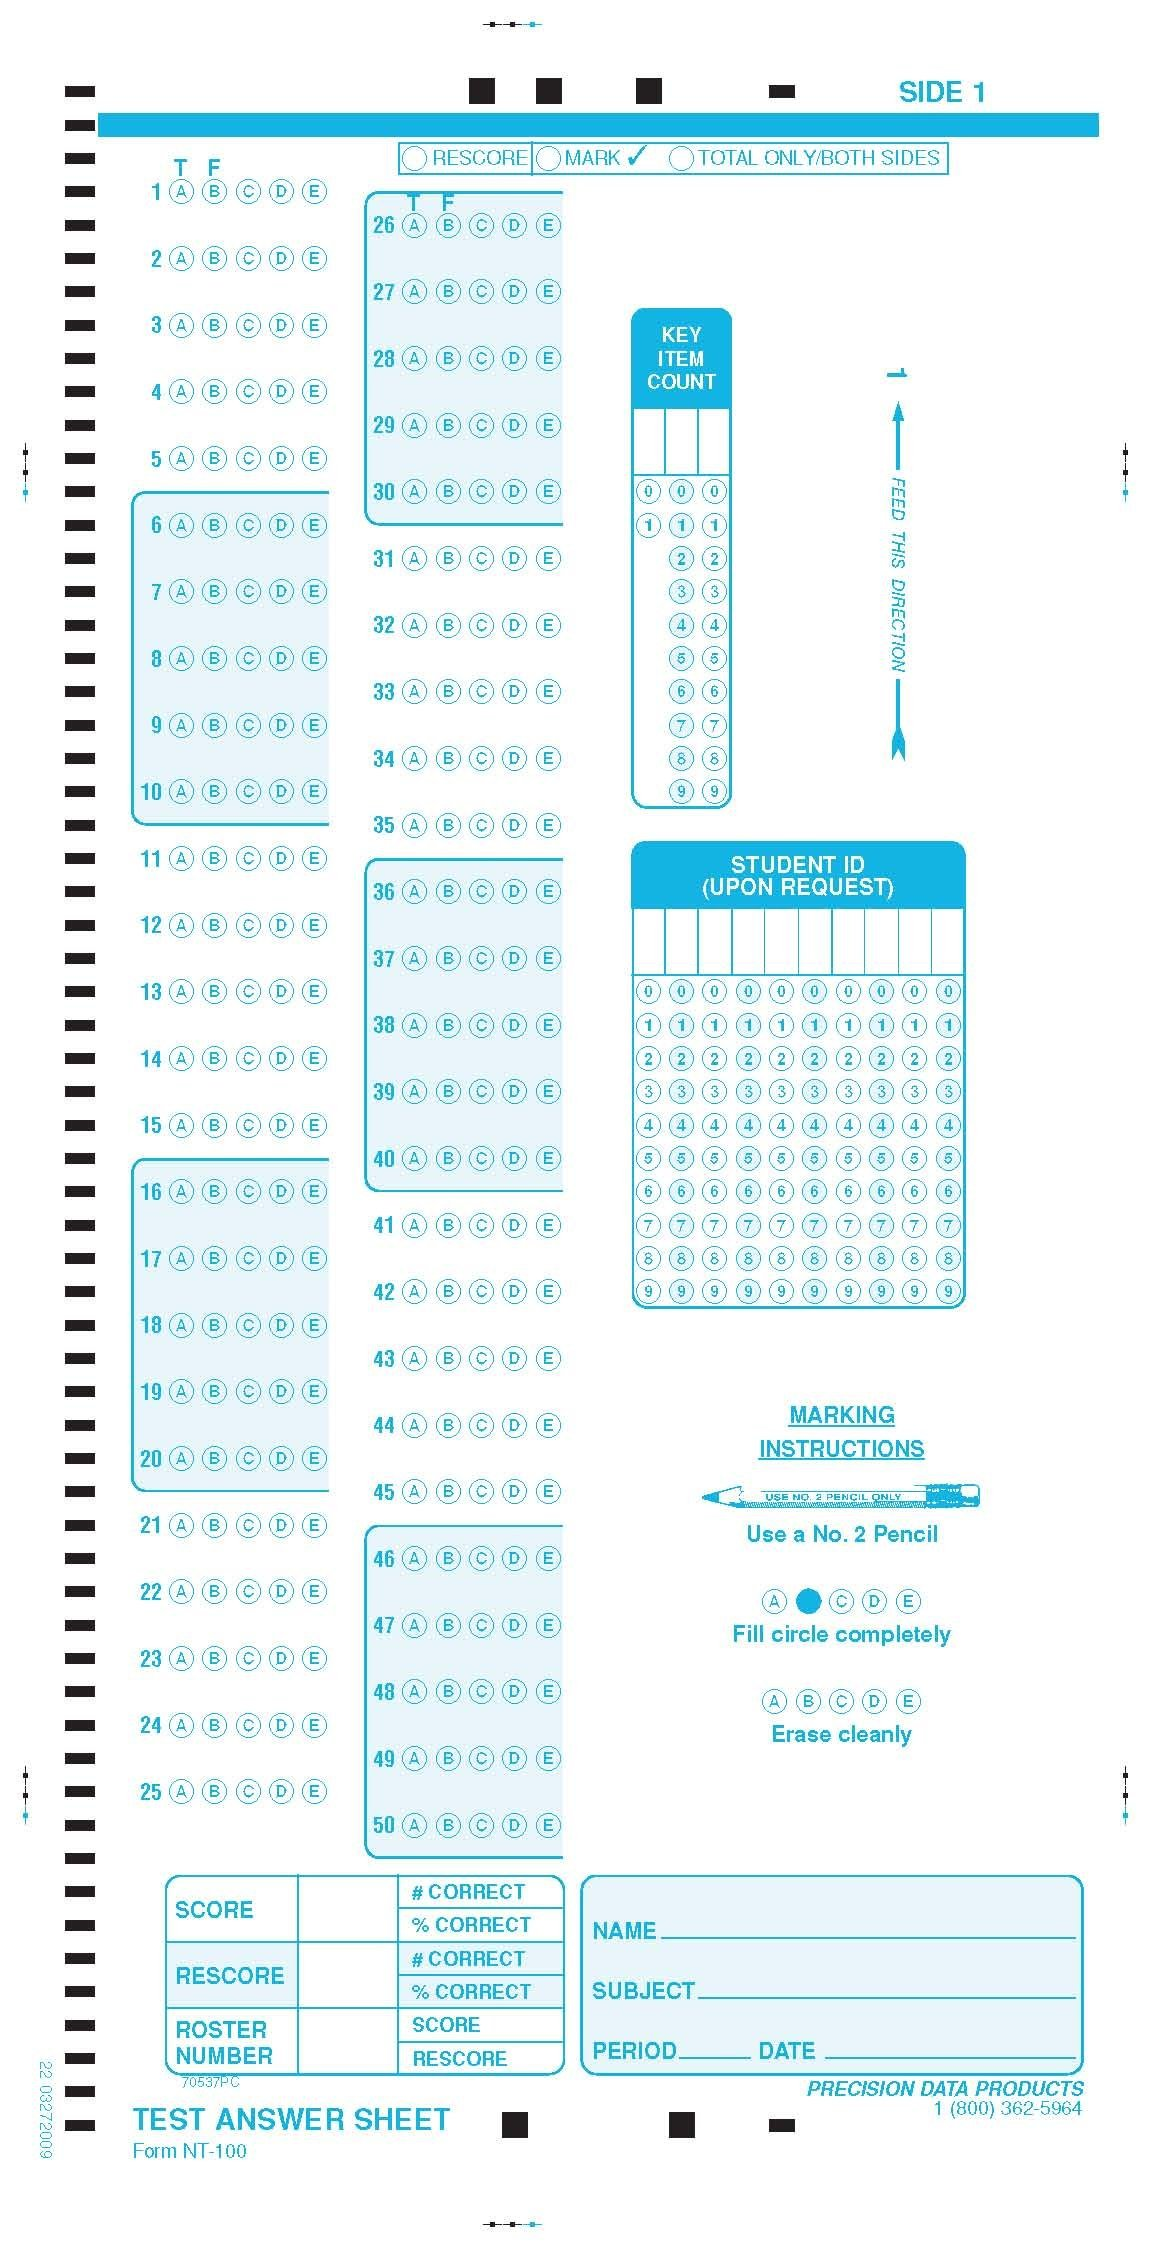 Precision Data Products PDP NT 100 (100 PACK) TESTING FORMS, Scantron 19641-B compatible